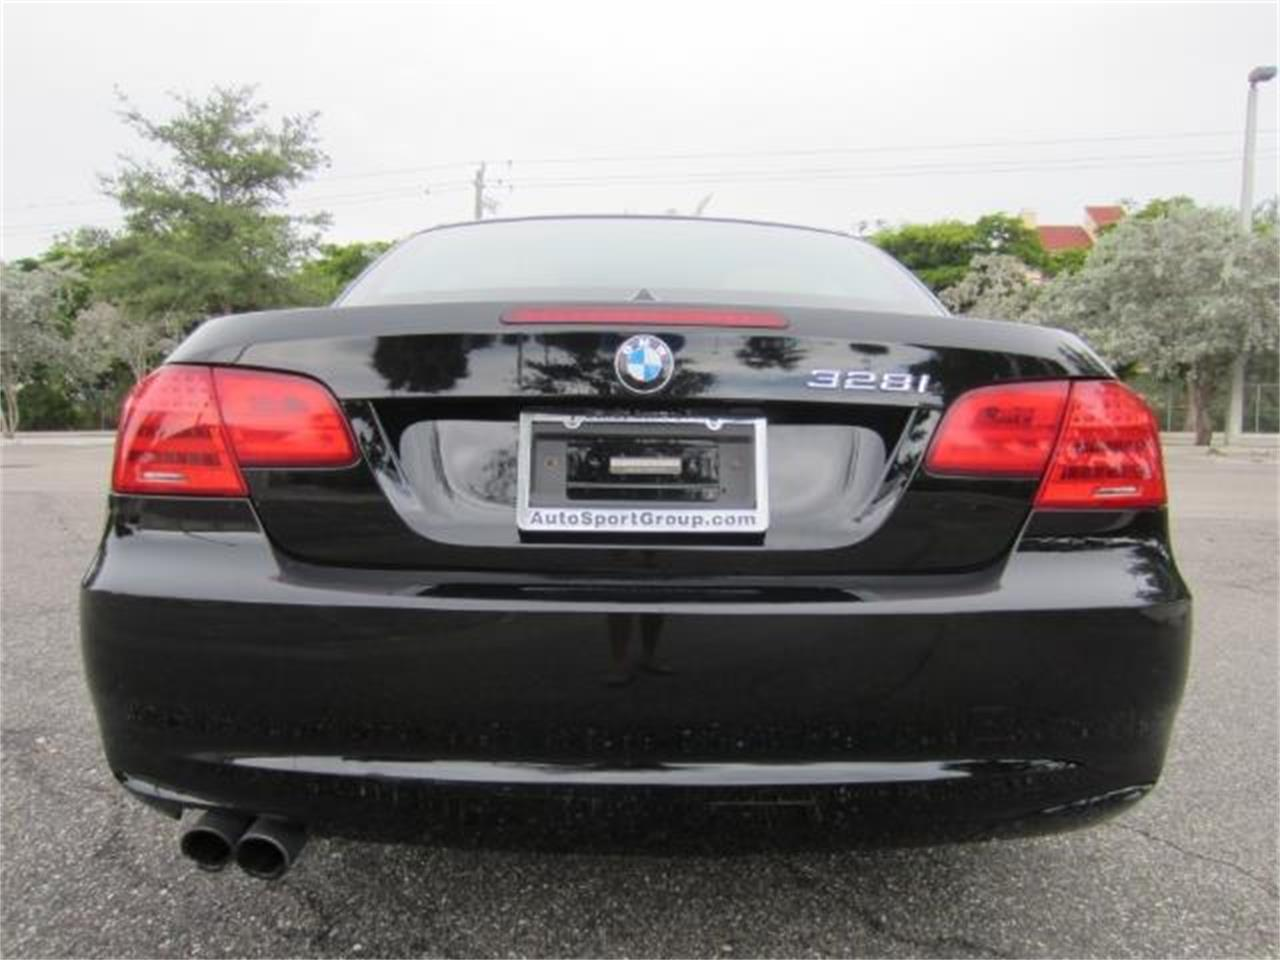 2011 BMW 328i for sale in Delray Beach, FL – photo 15